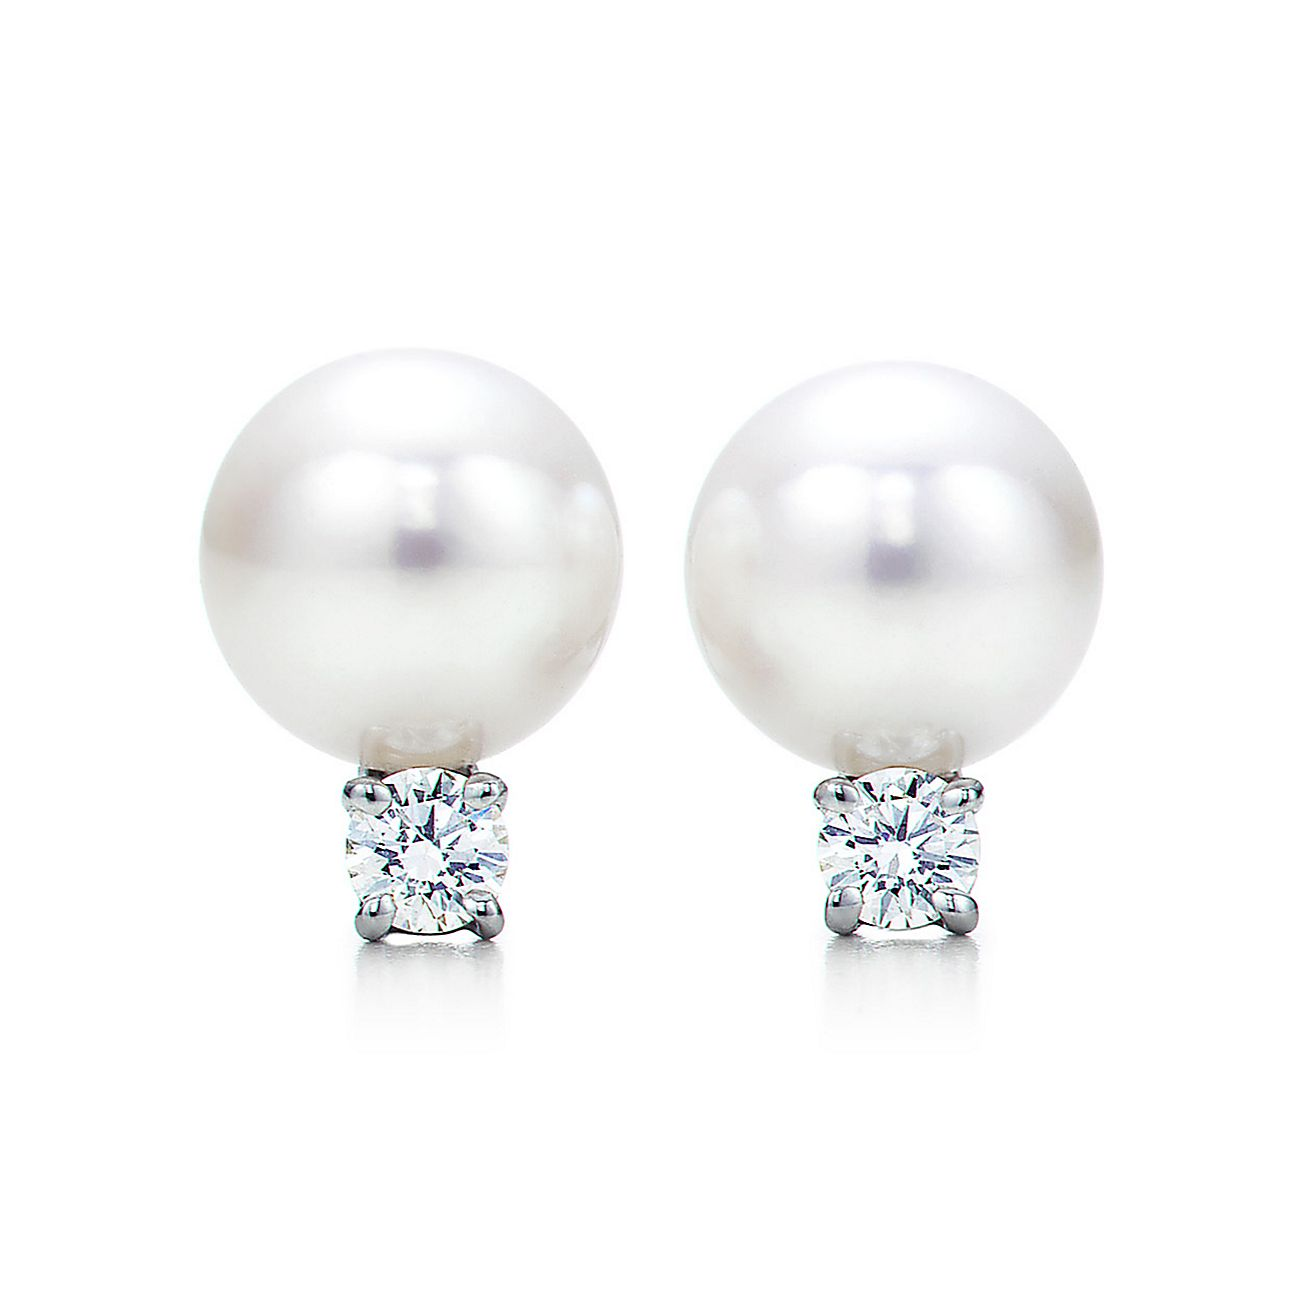 Tiffany Signature™ Earrings In 18k White Gold With Akoya Pearls And  Diamonds  Tiffany & Co